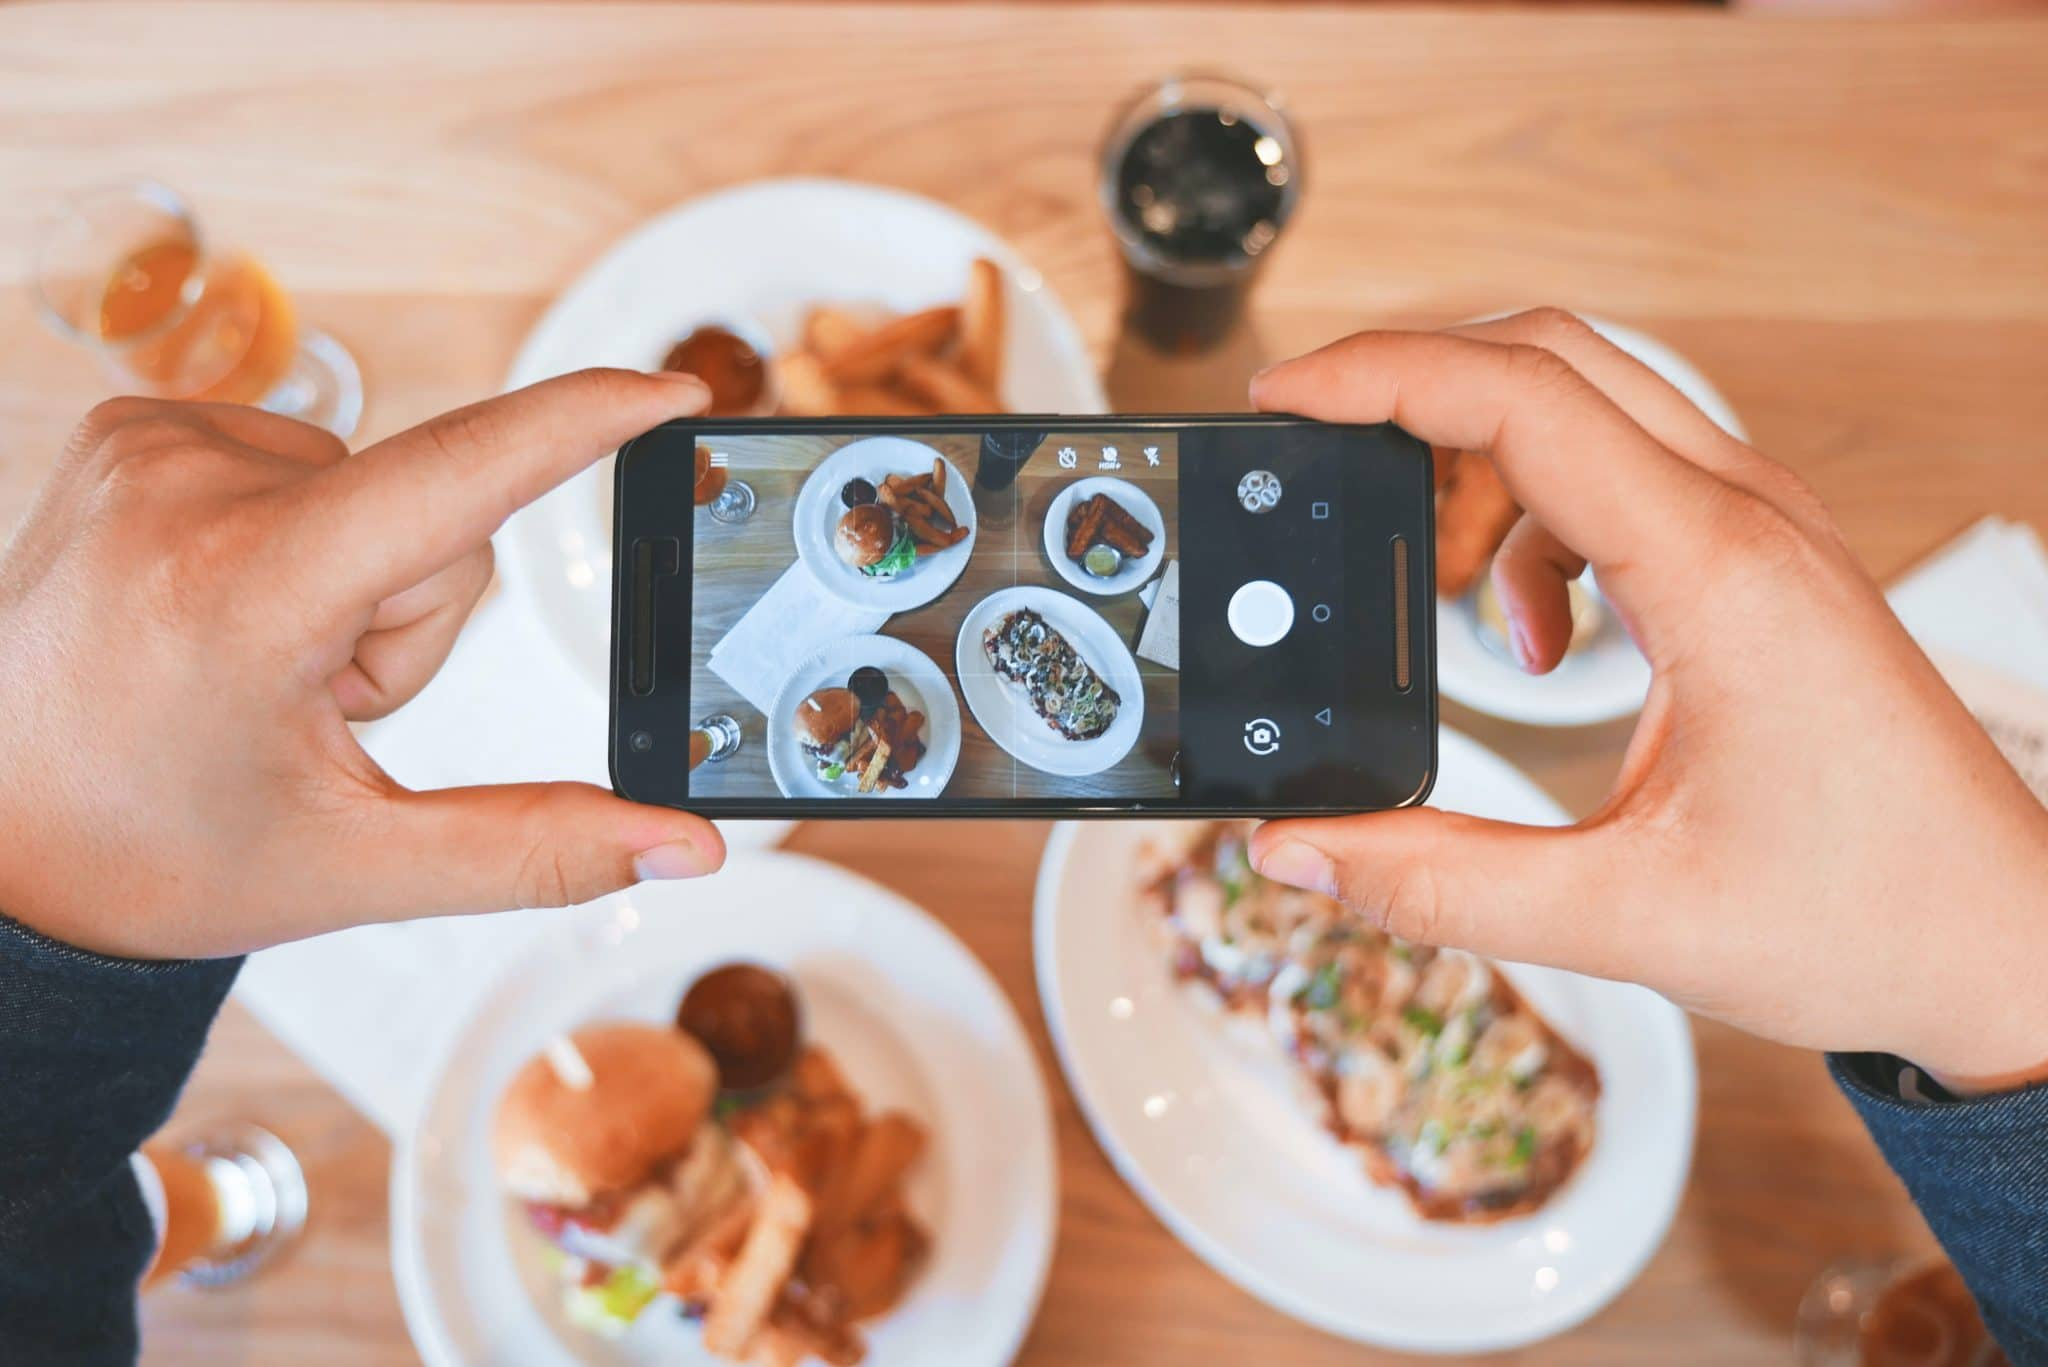 7 Tips for User-Generated Content Marketing